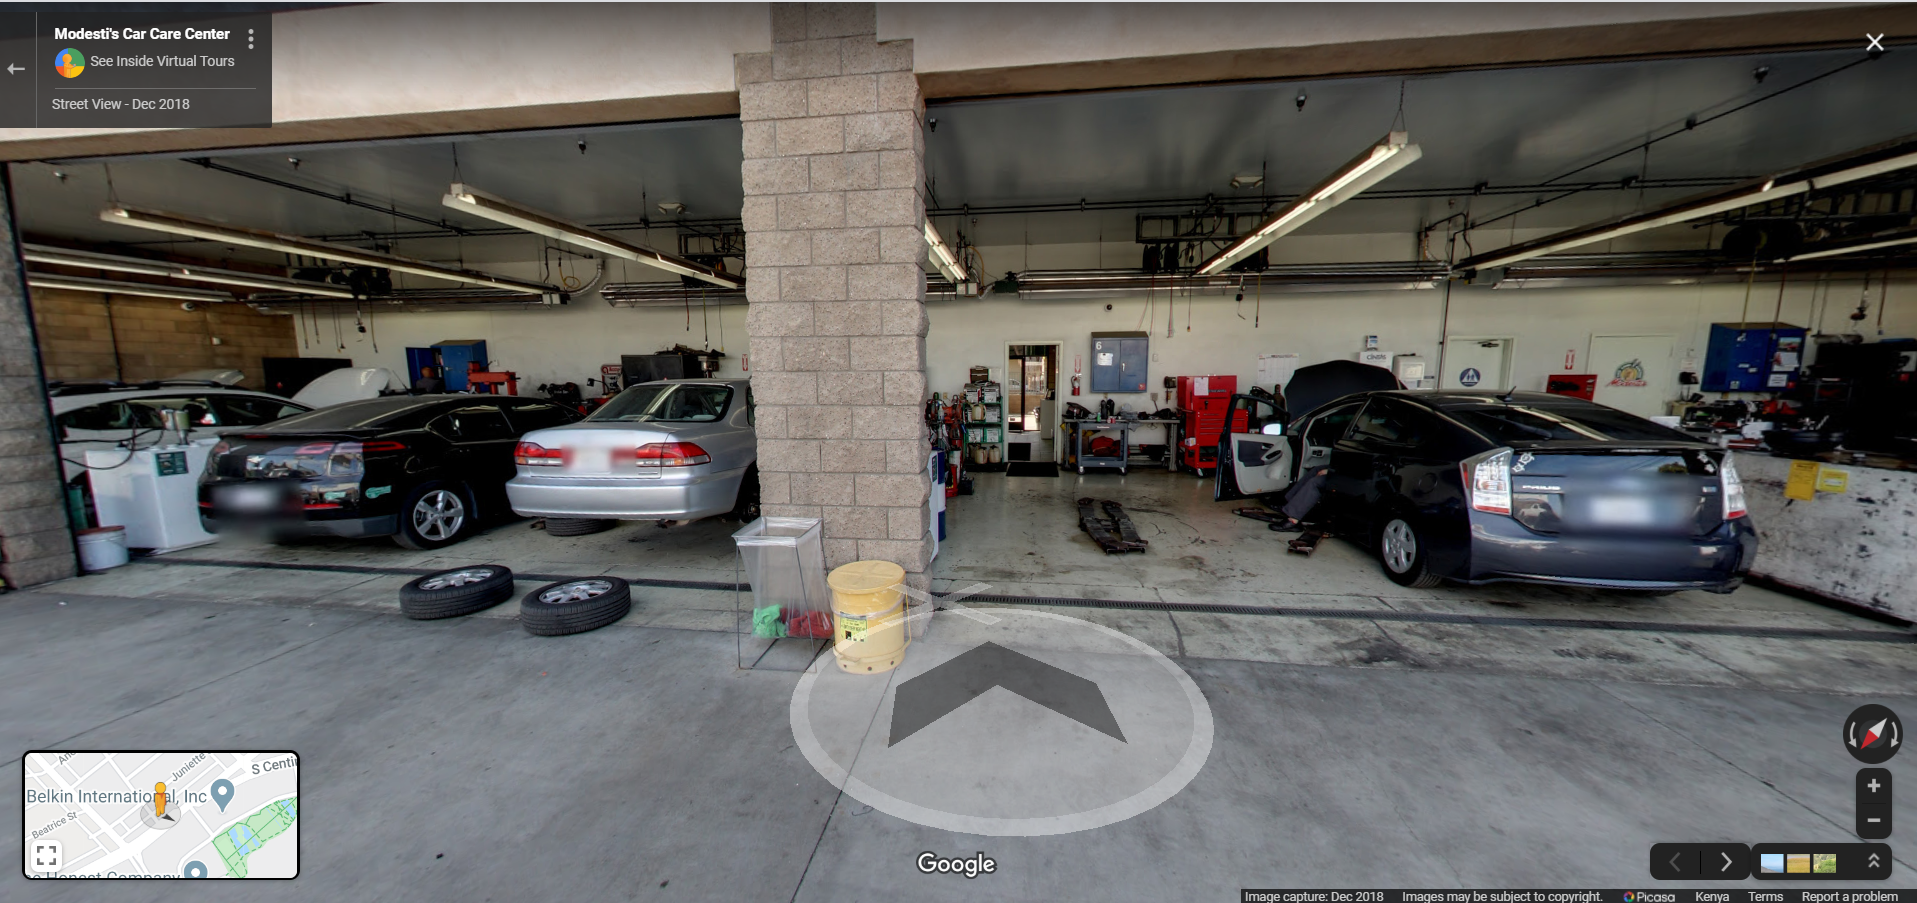 Modesti's Car Care Center - Culver City